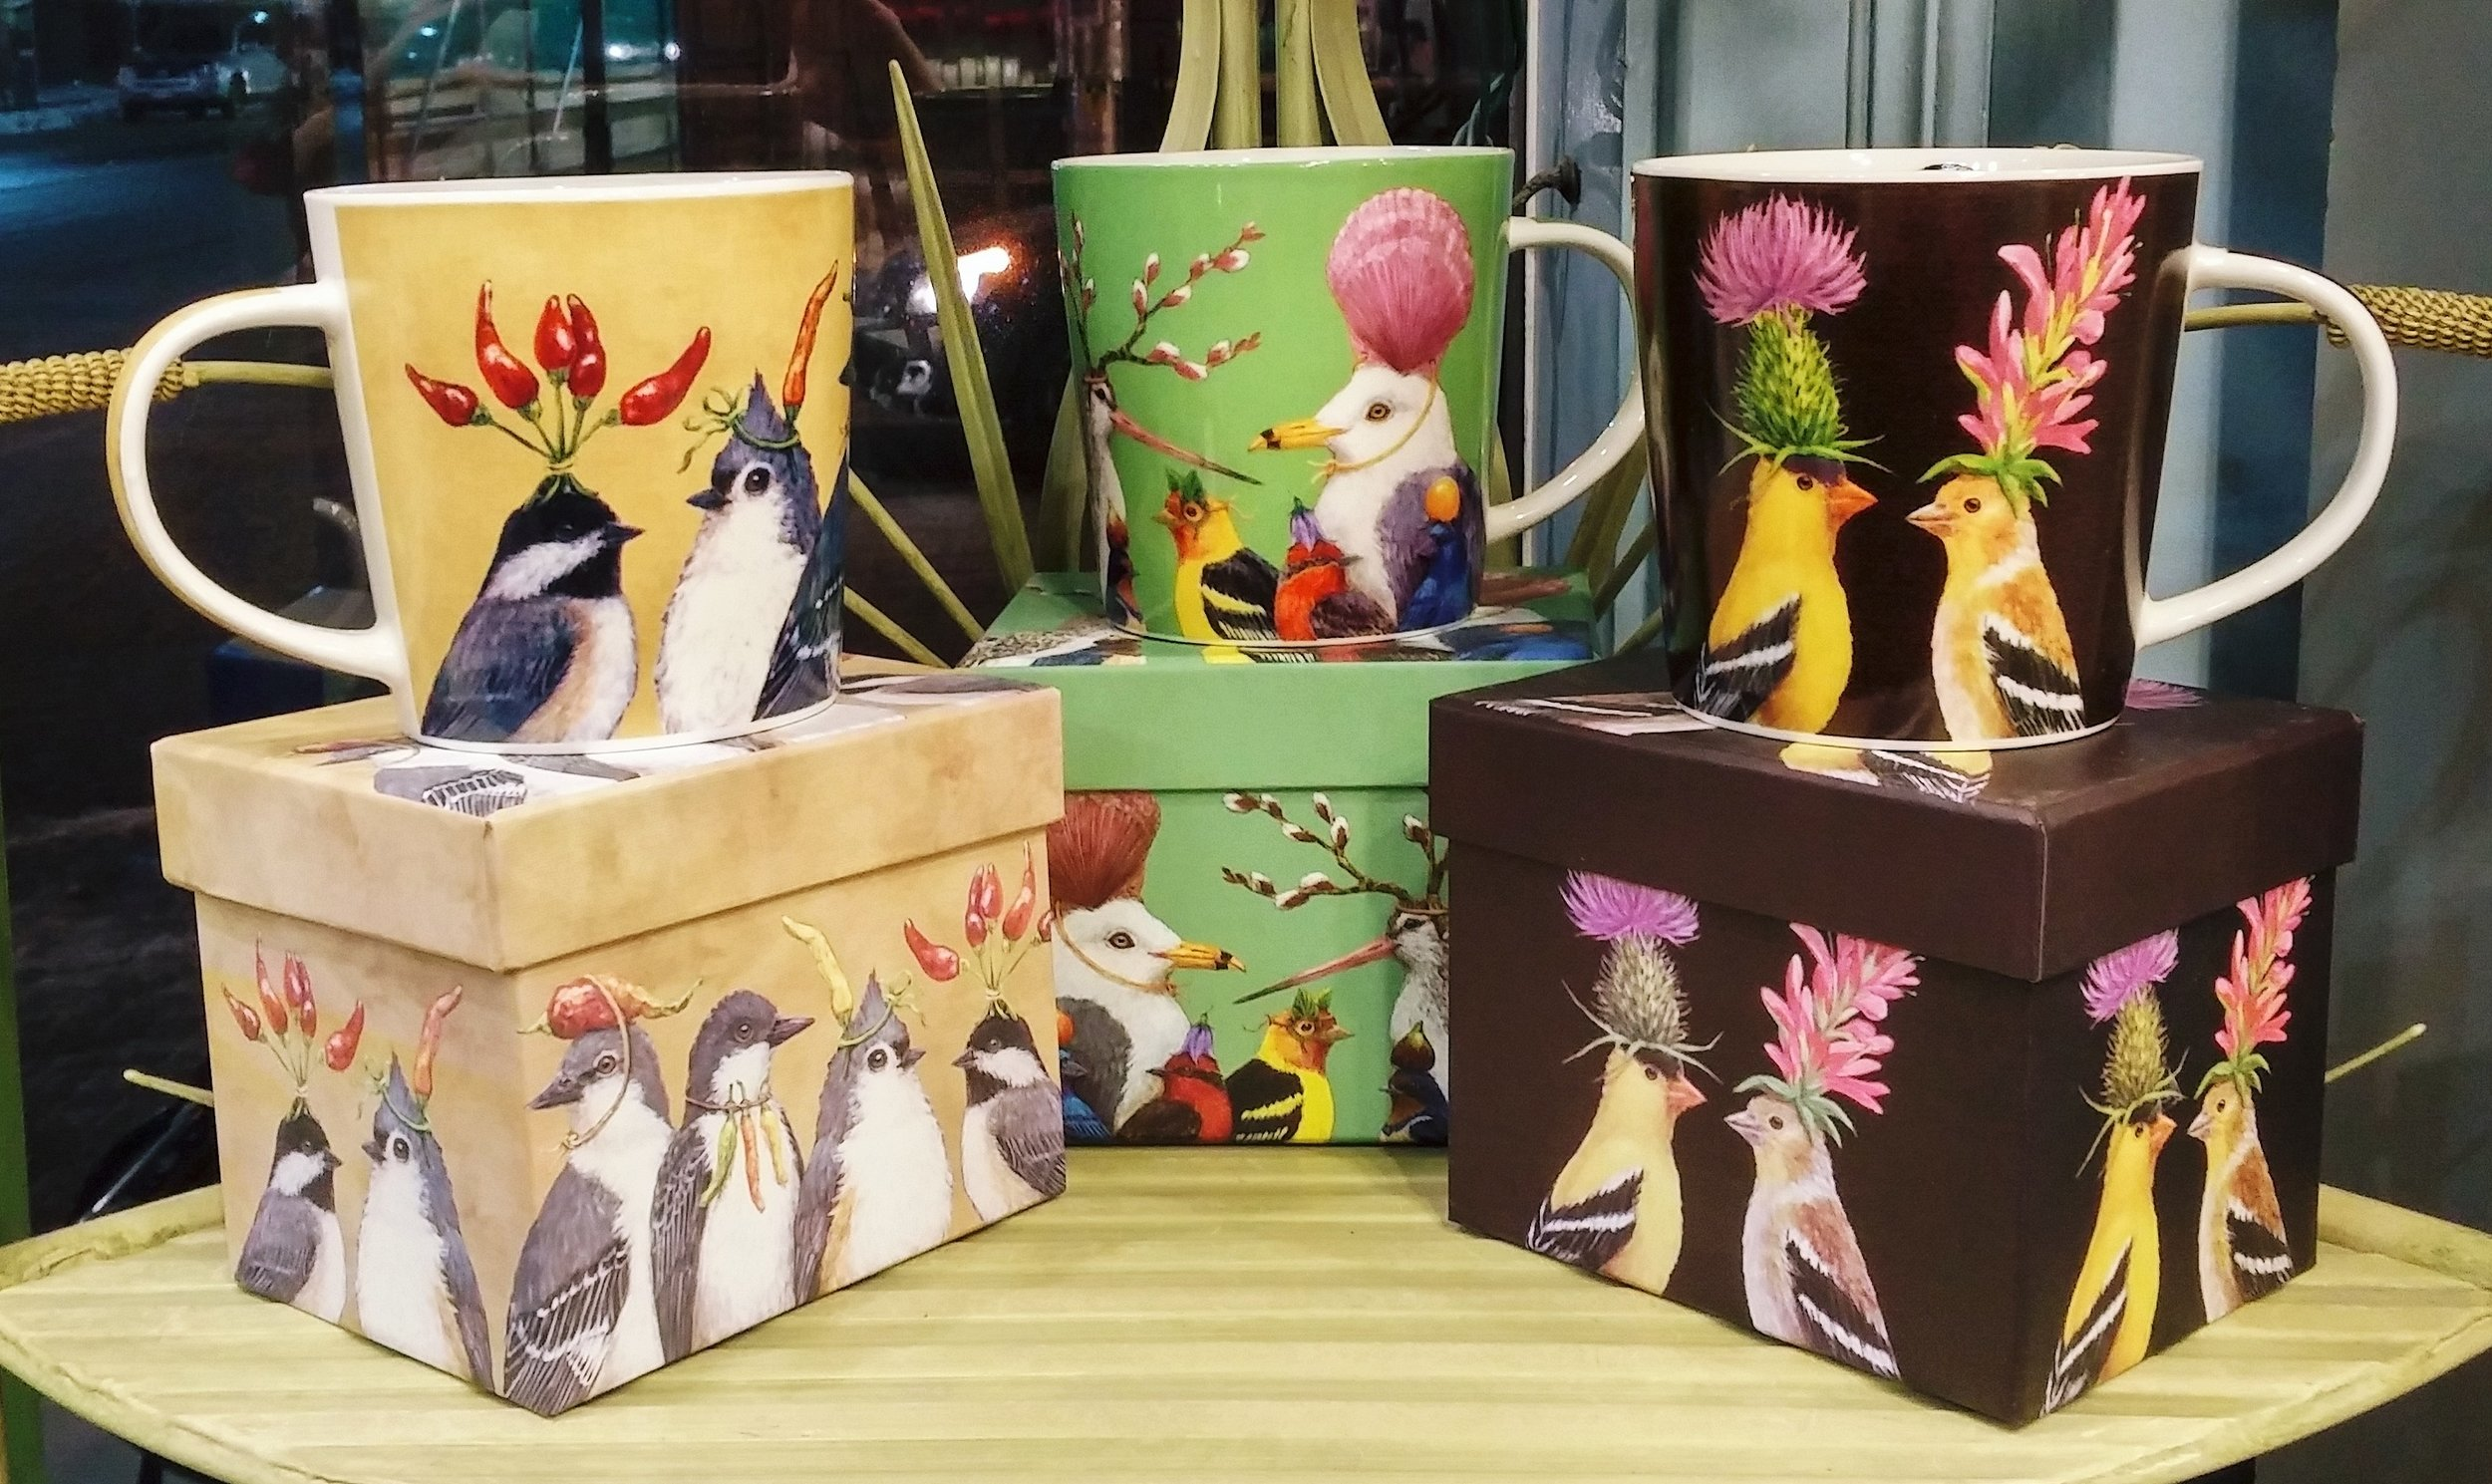 Last minute gift ideas: fanciful mugs, birds sporting fascinators to rival the royals! Boxed and ready to wrap. We are open today until 4 p.m. Merry Christmas from The Papery!!  December 24, 2017